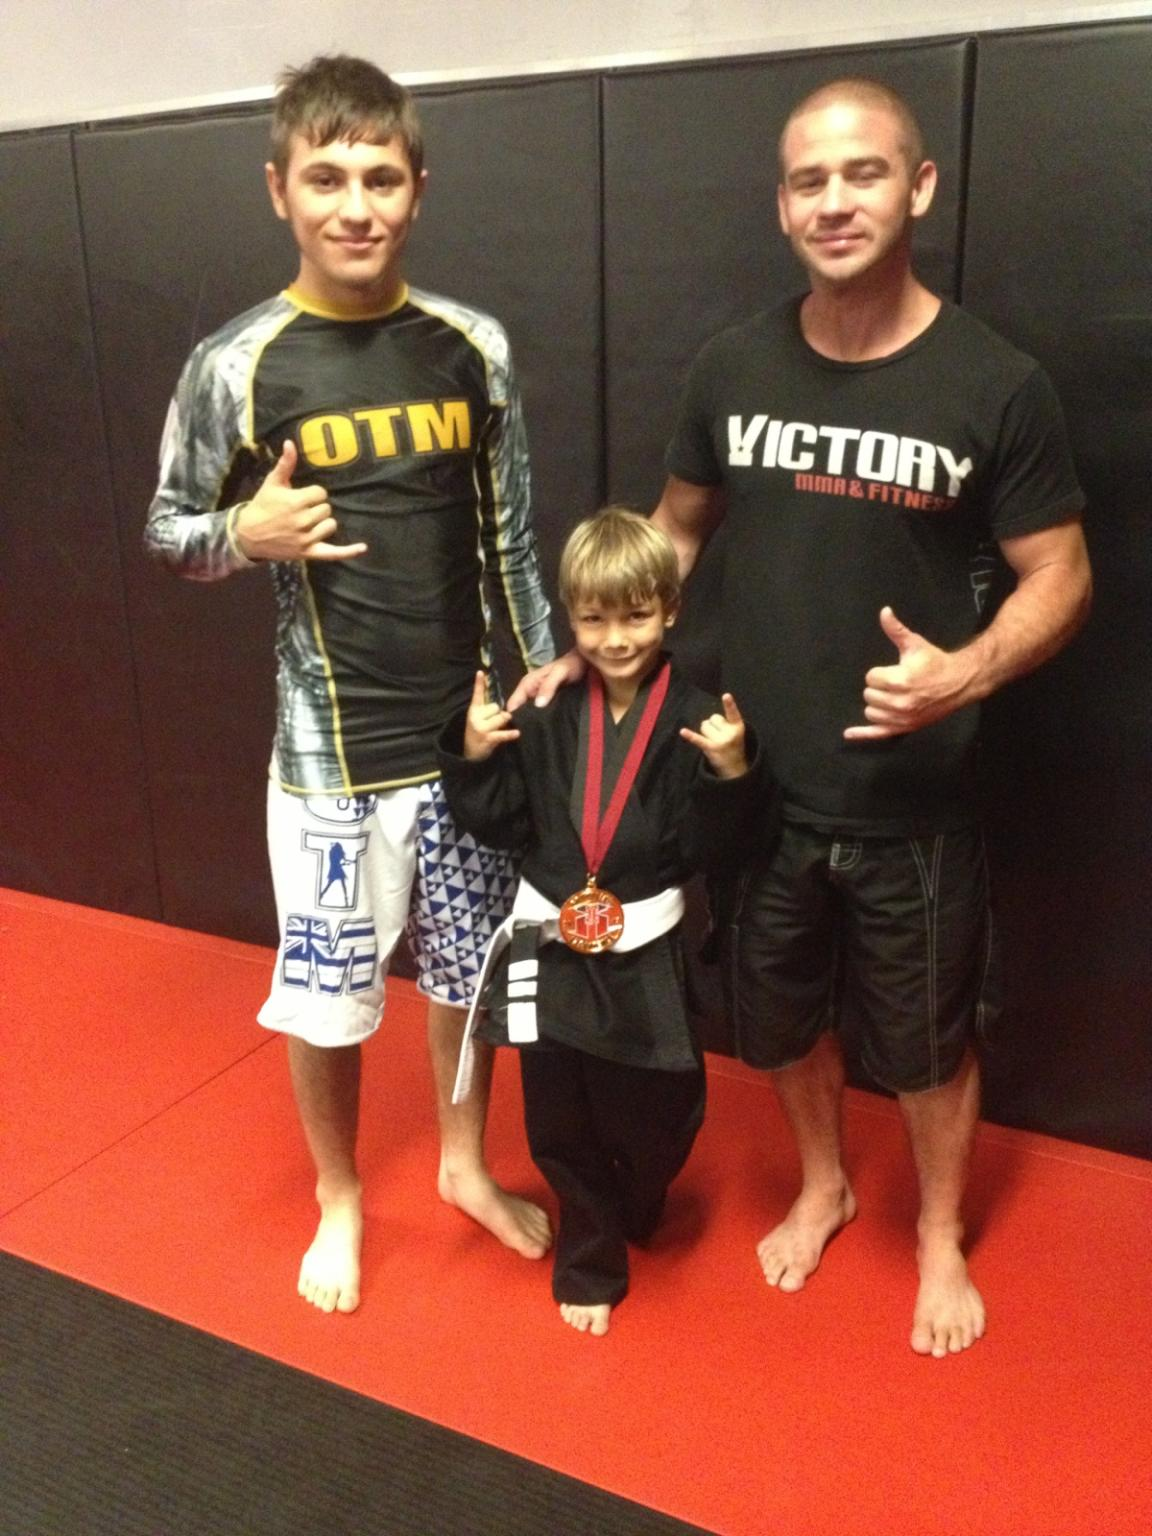 Congratulations Atticus, Devin, and Sean on Winning your Divisions at Grappling X